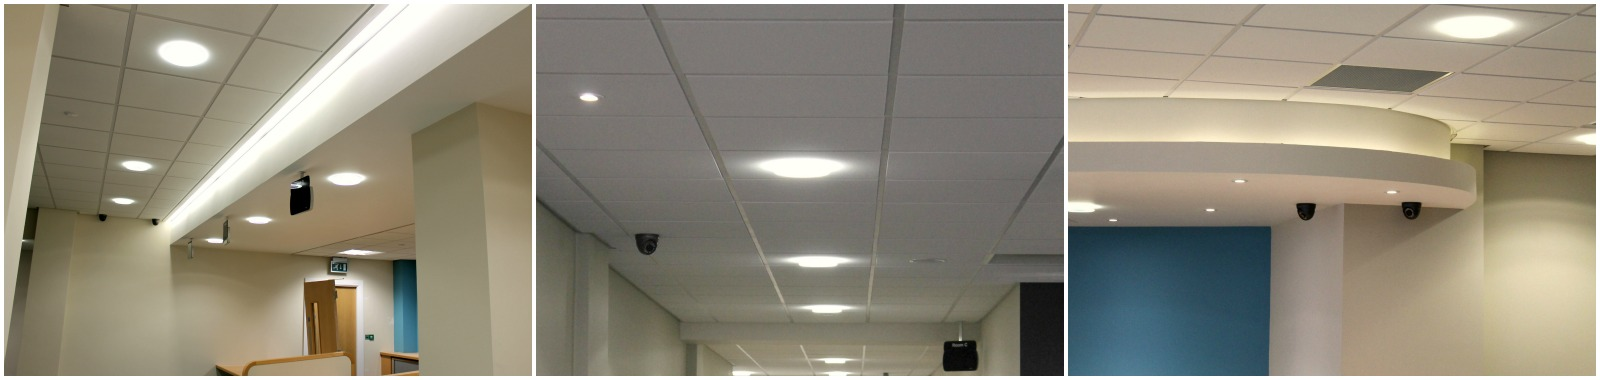 suspended-ceiling-header-collage